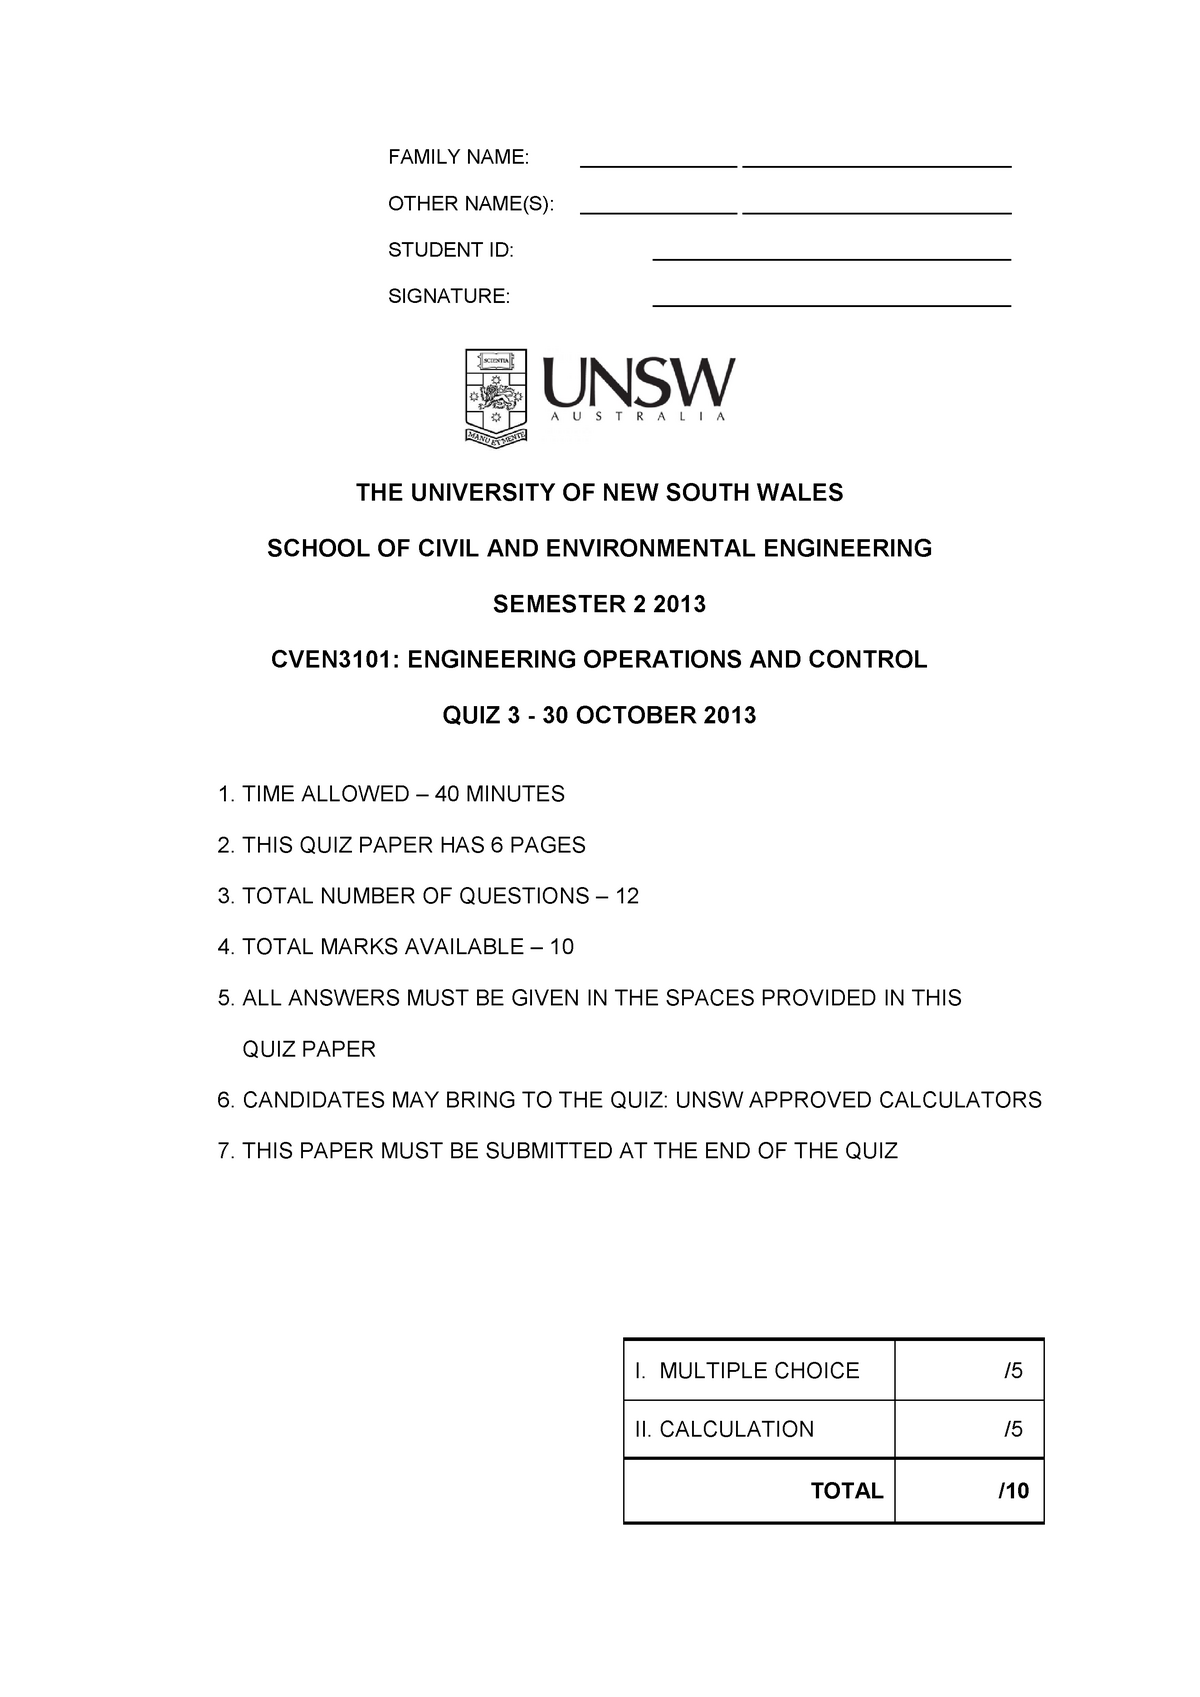 Practice exam 2013 questions and answers - CVEN3101 - UNSW